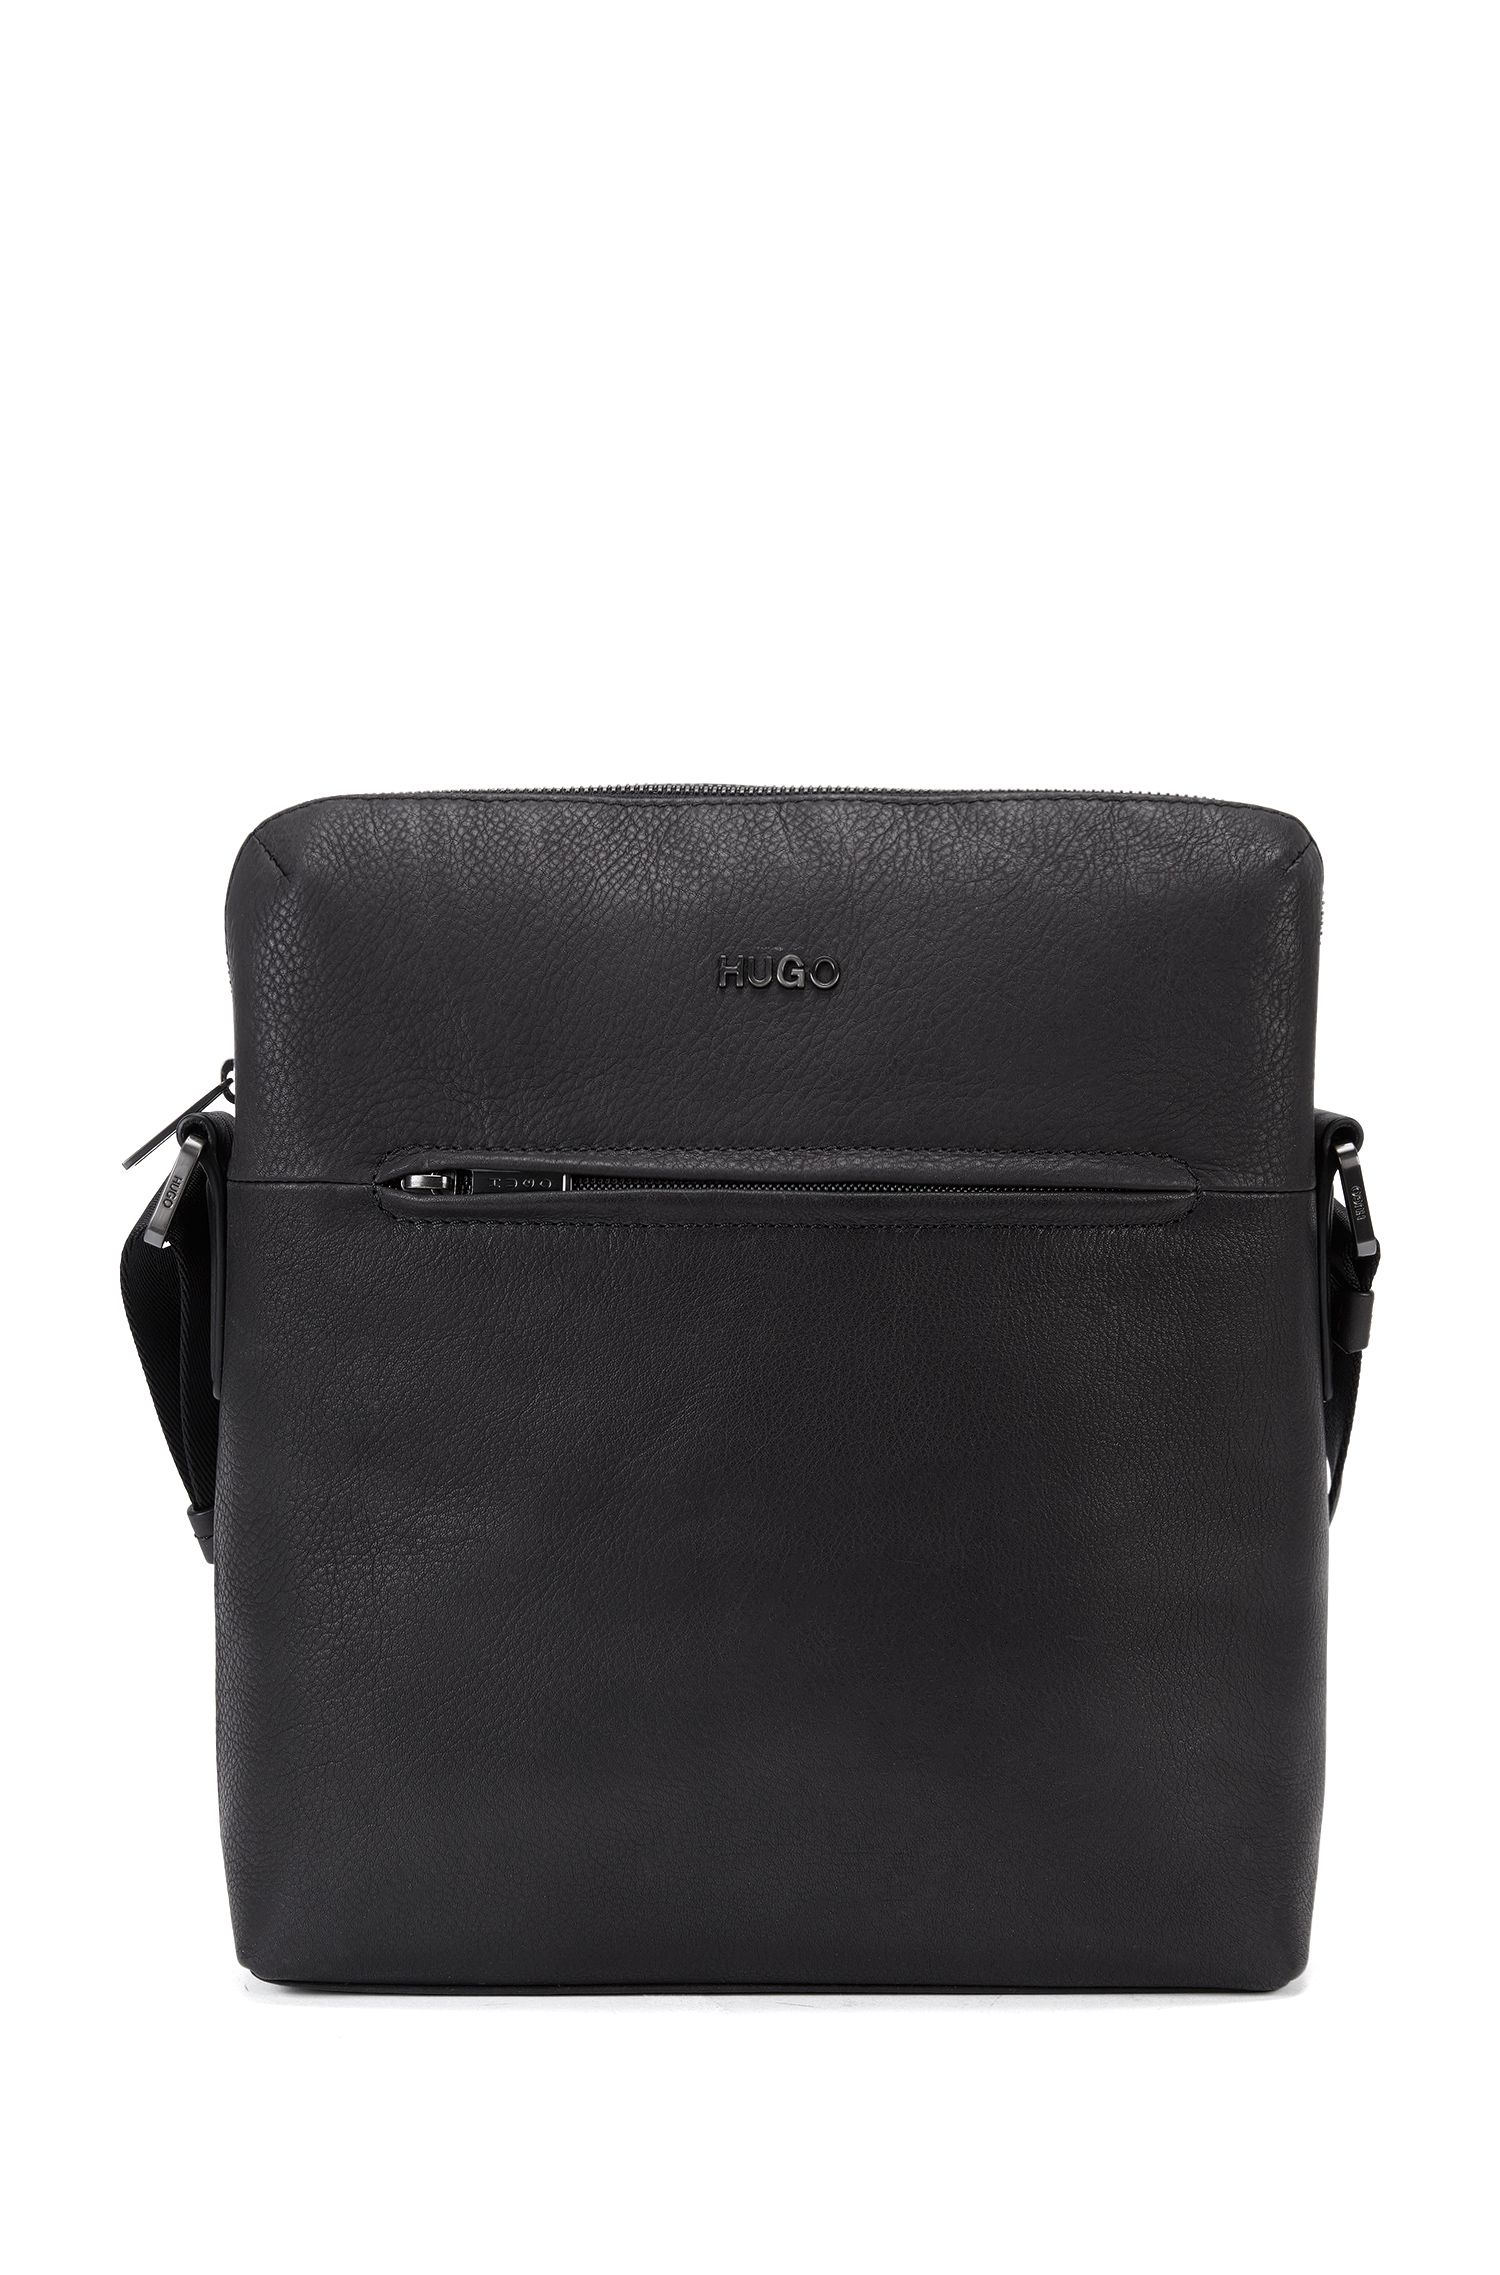 Leather cross-body bag with zipped front pocket